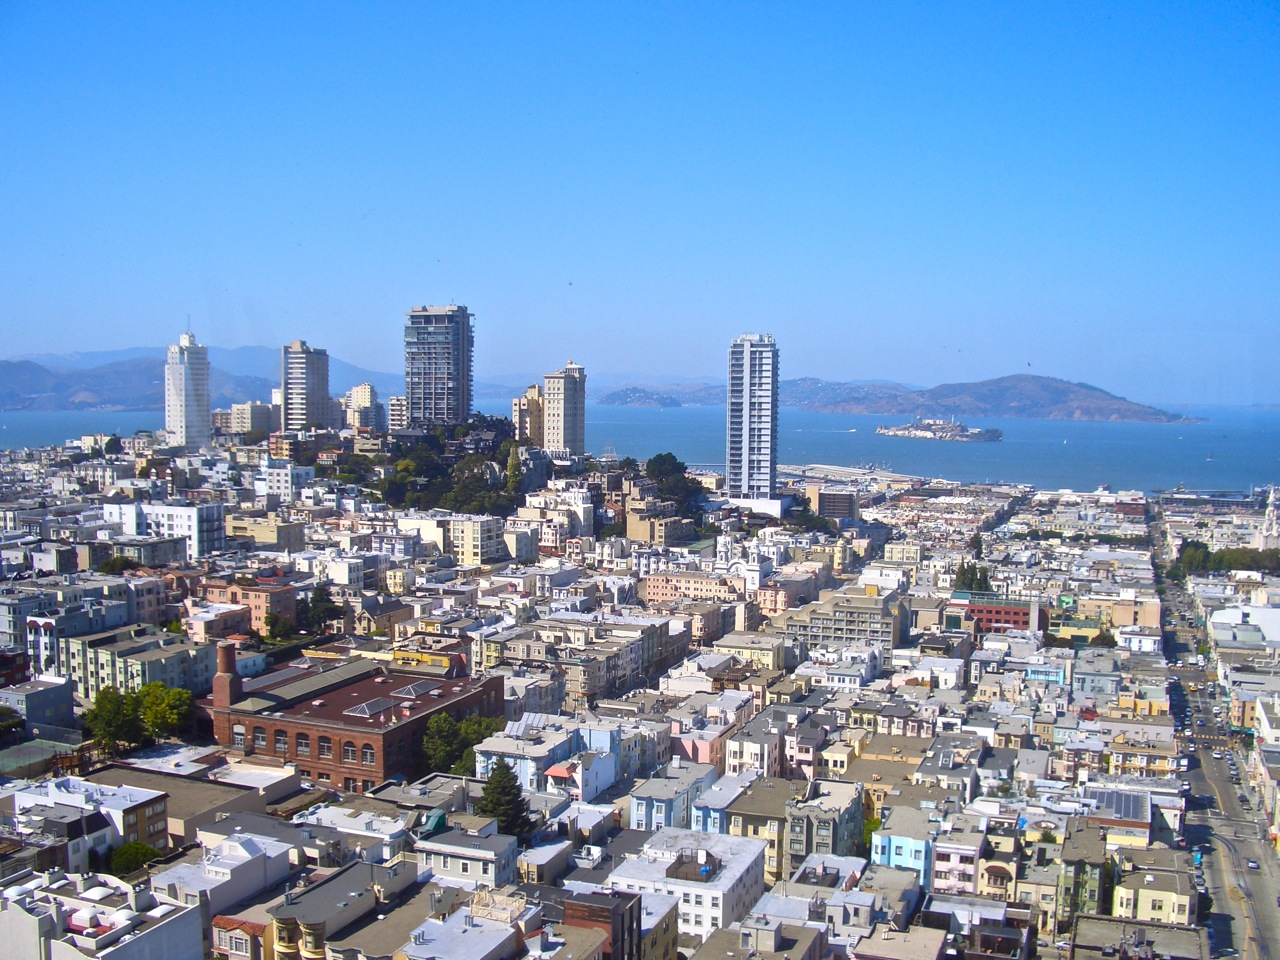 San Francisco Asia and Middle East Beaches